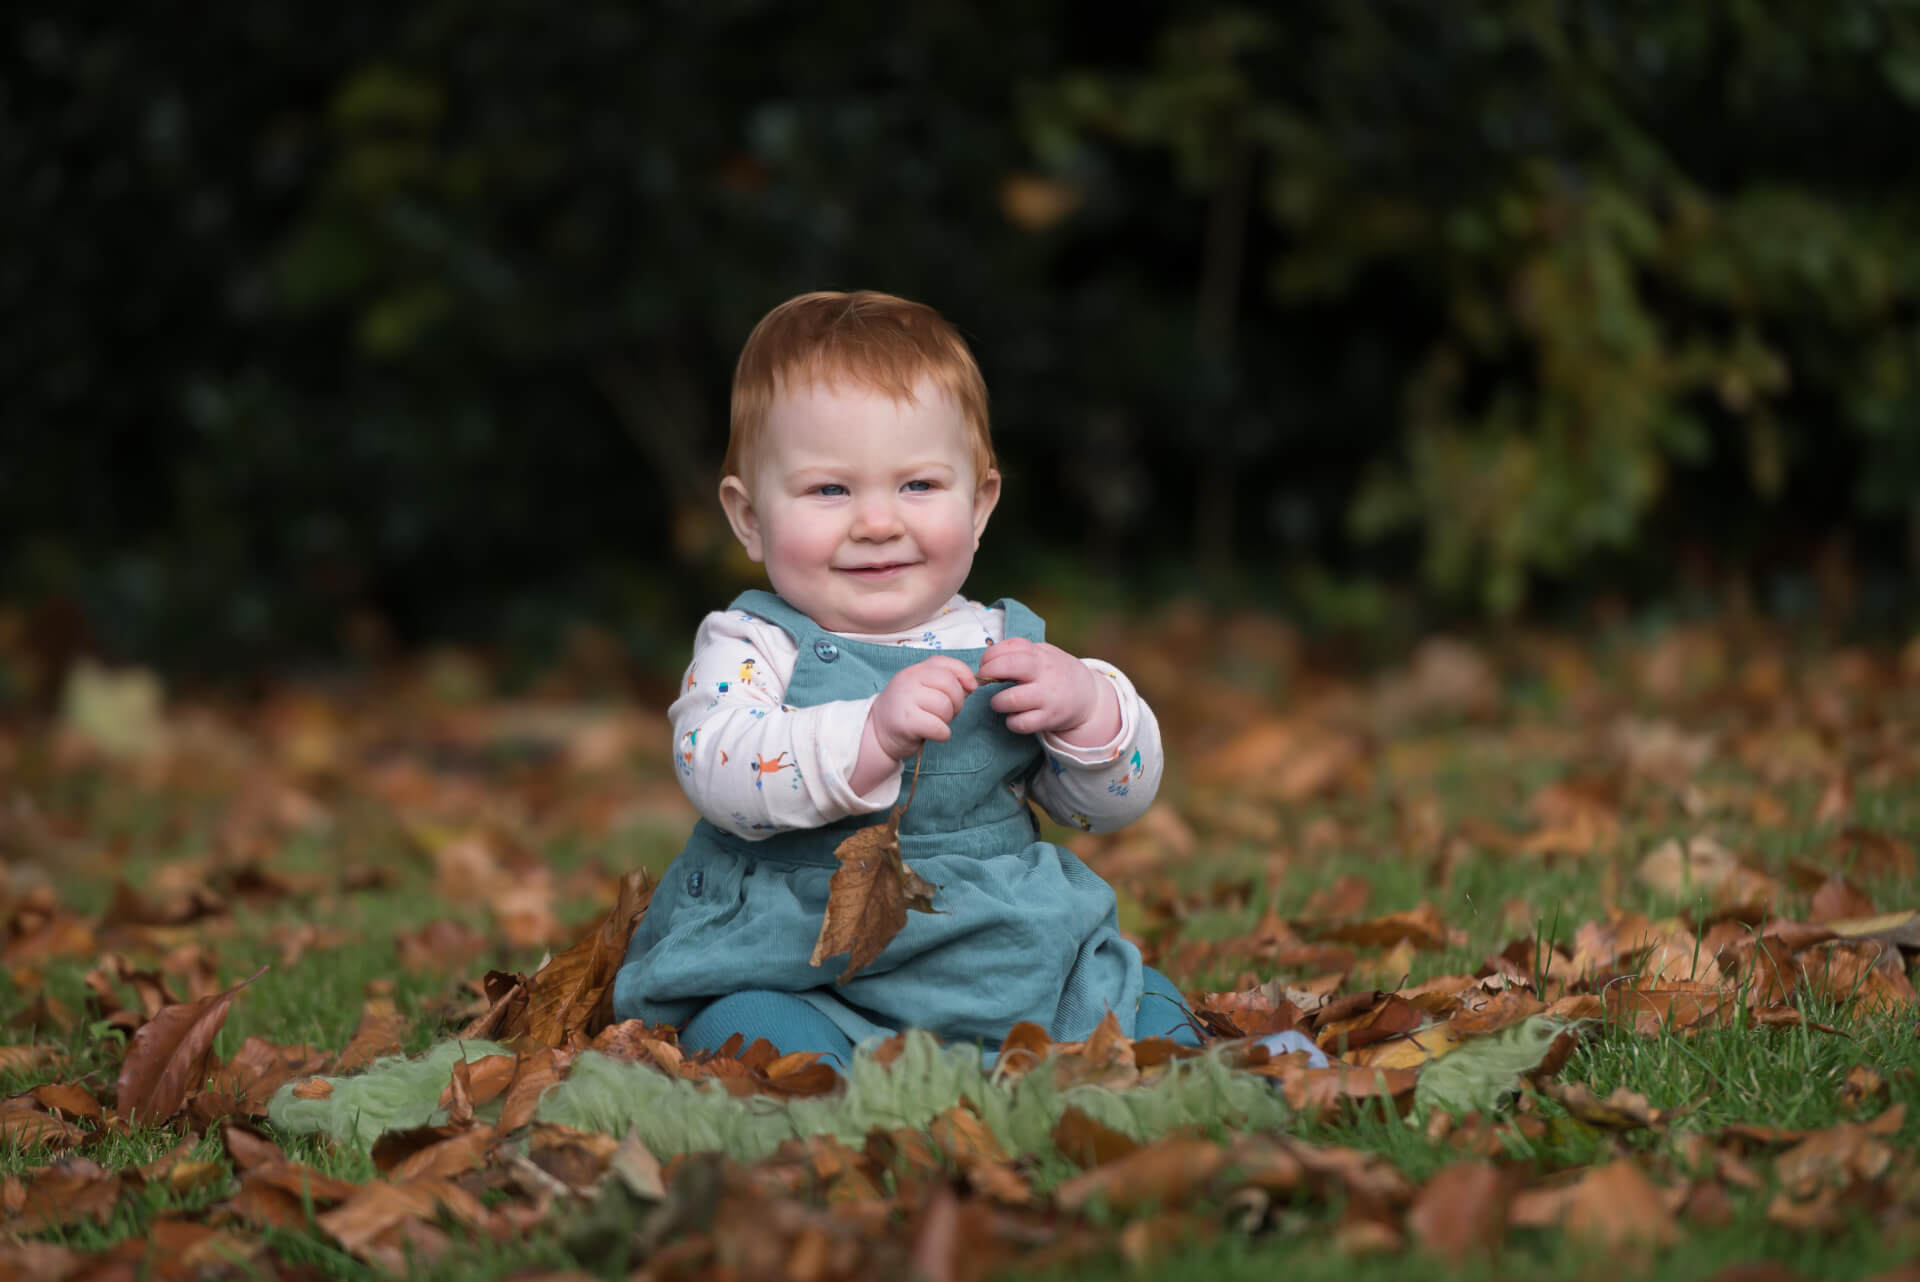 Baby playing with leaves during an outdoor photoshoot - Slice of Life Photography - Spalding photographer